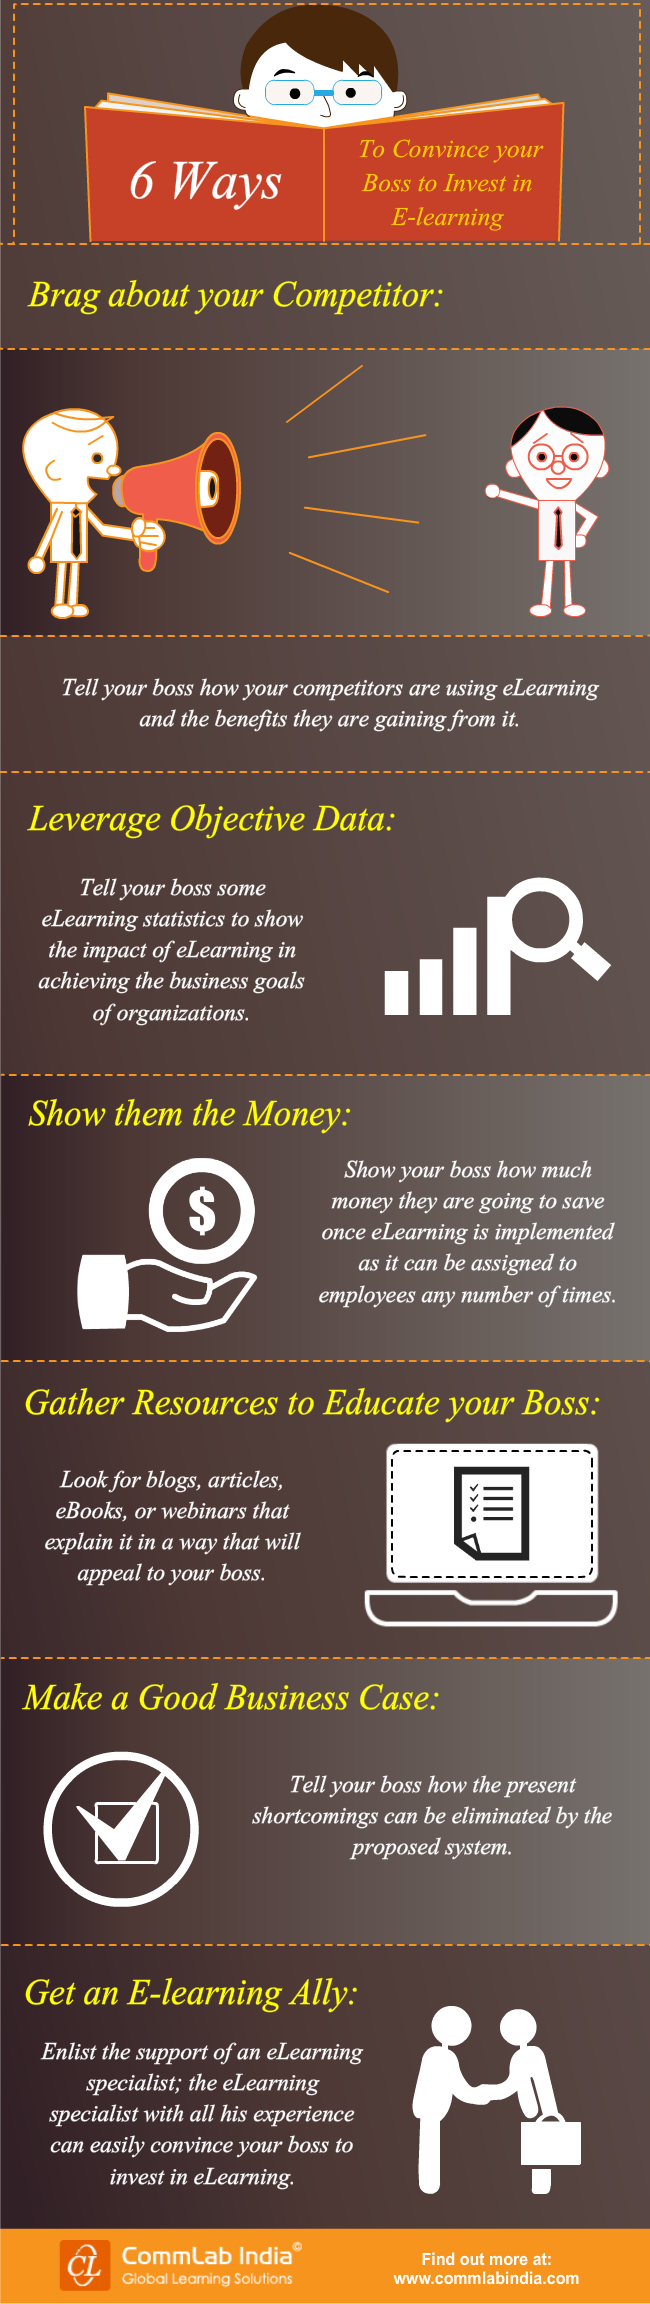 6 Ways to Convince Your Boss to Invest in E-learning [Infographic]